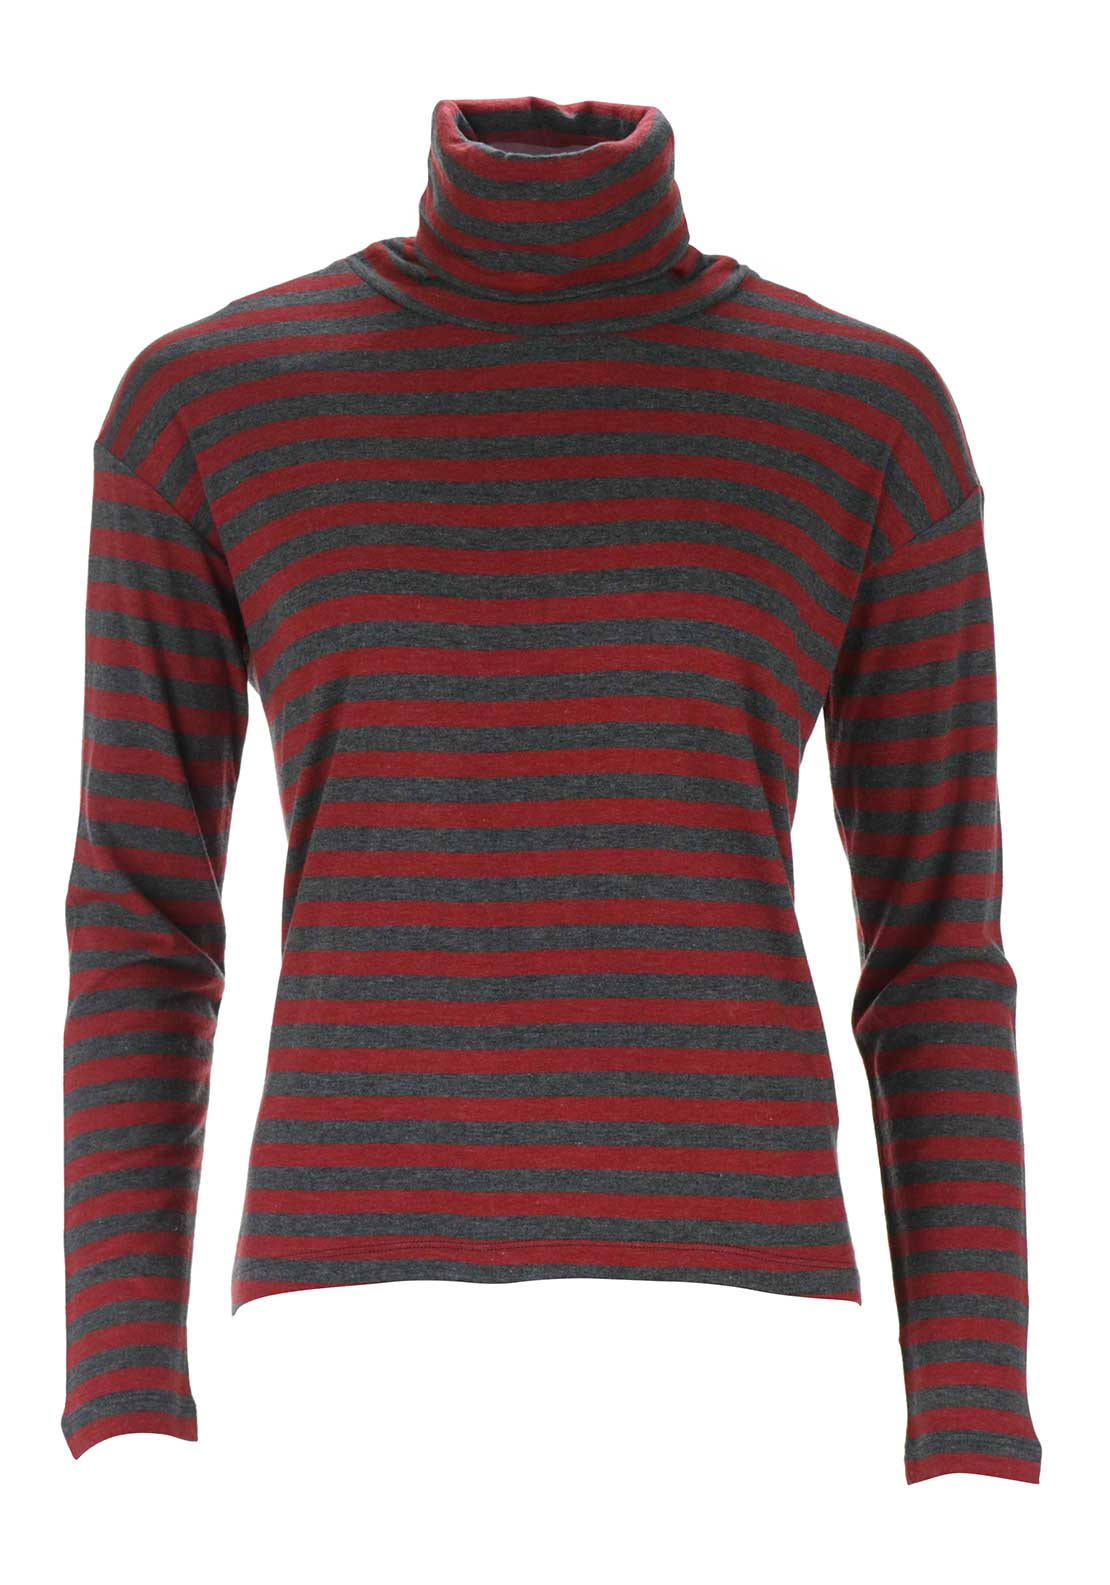 Sandwich Striped Polo Neck Top, Red and Grey